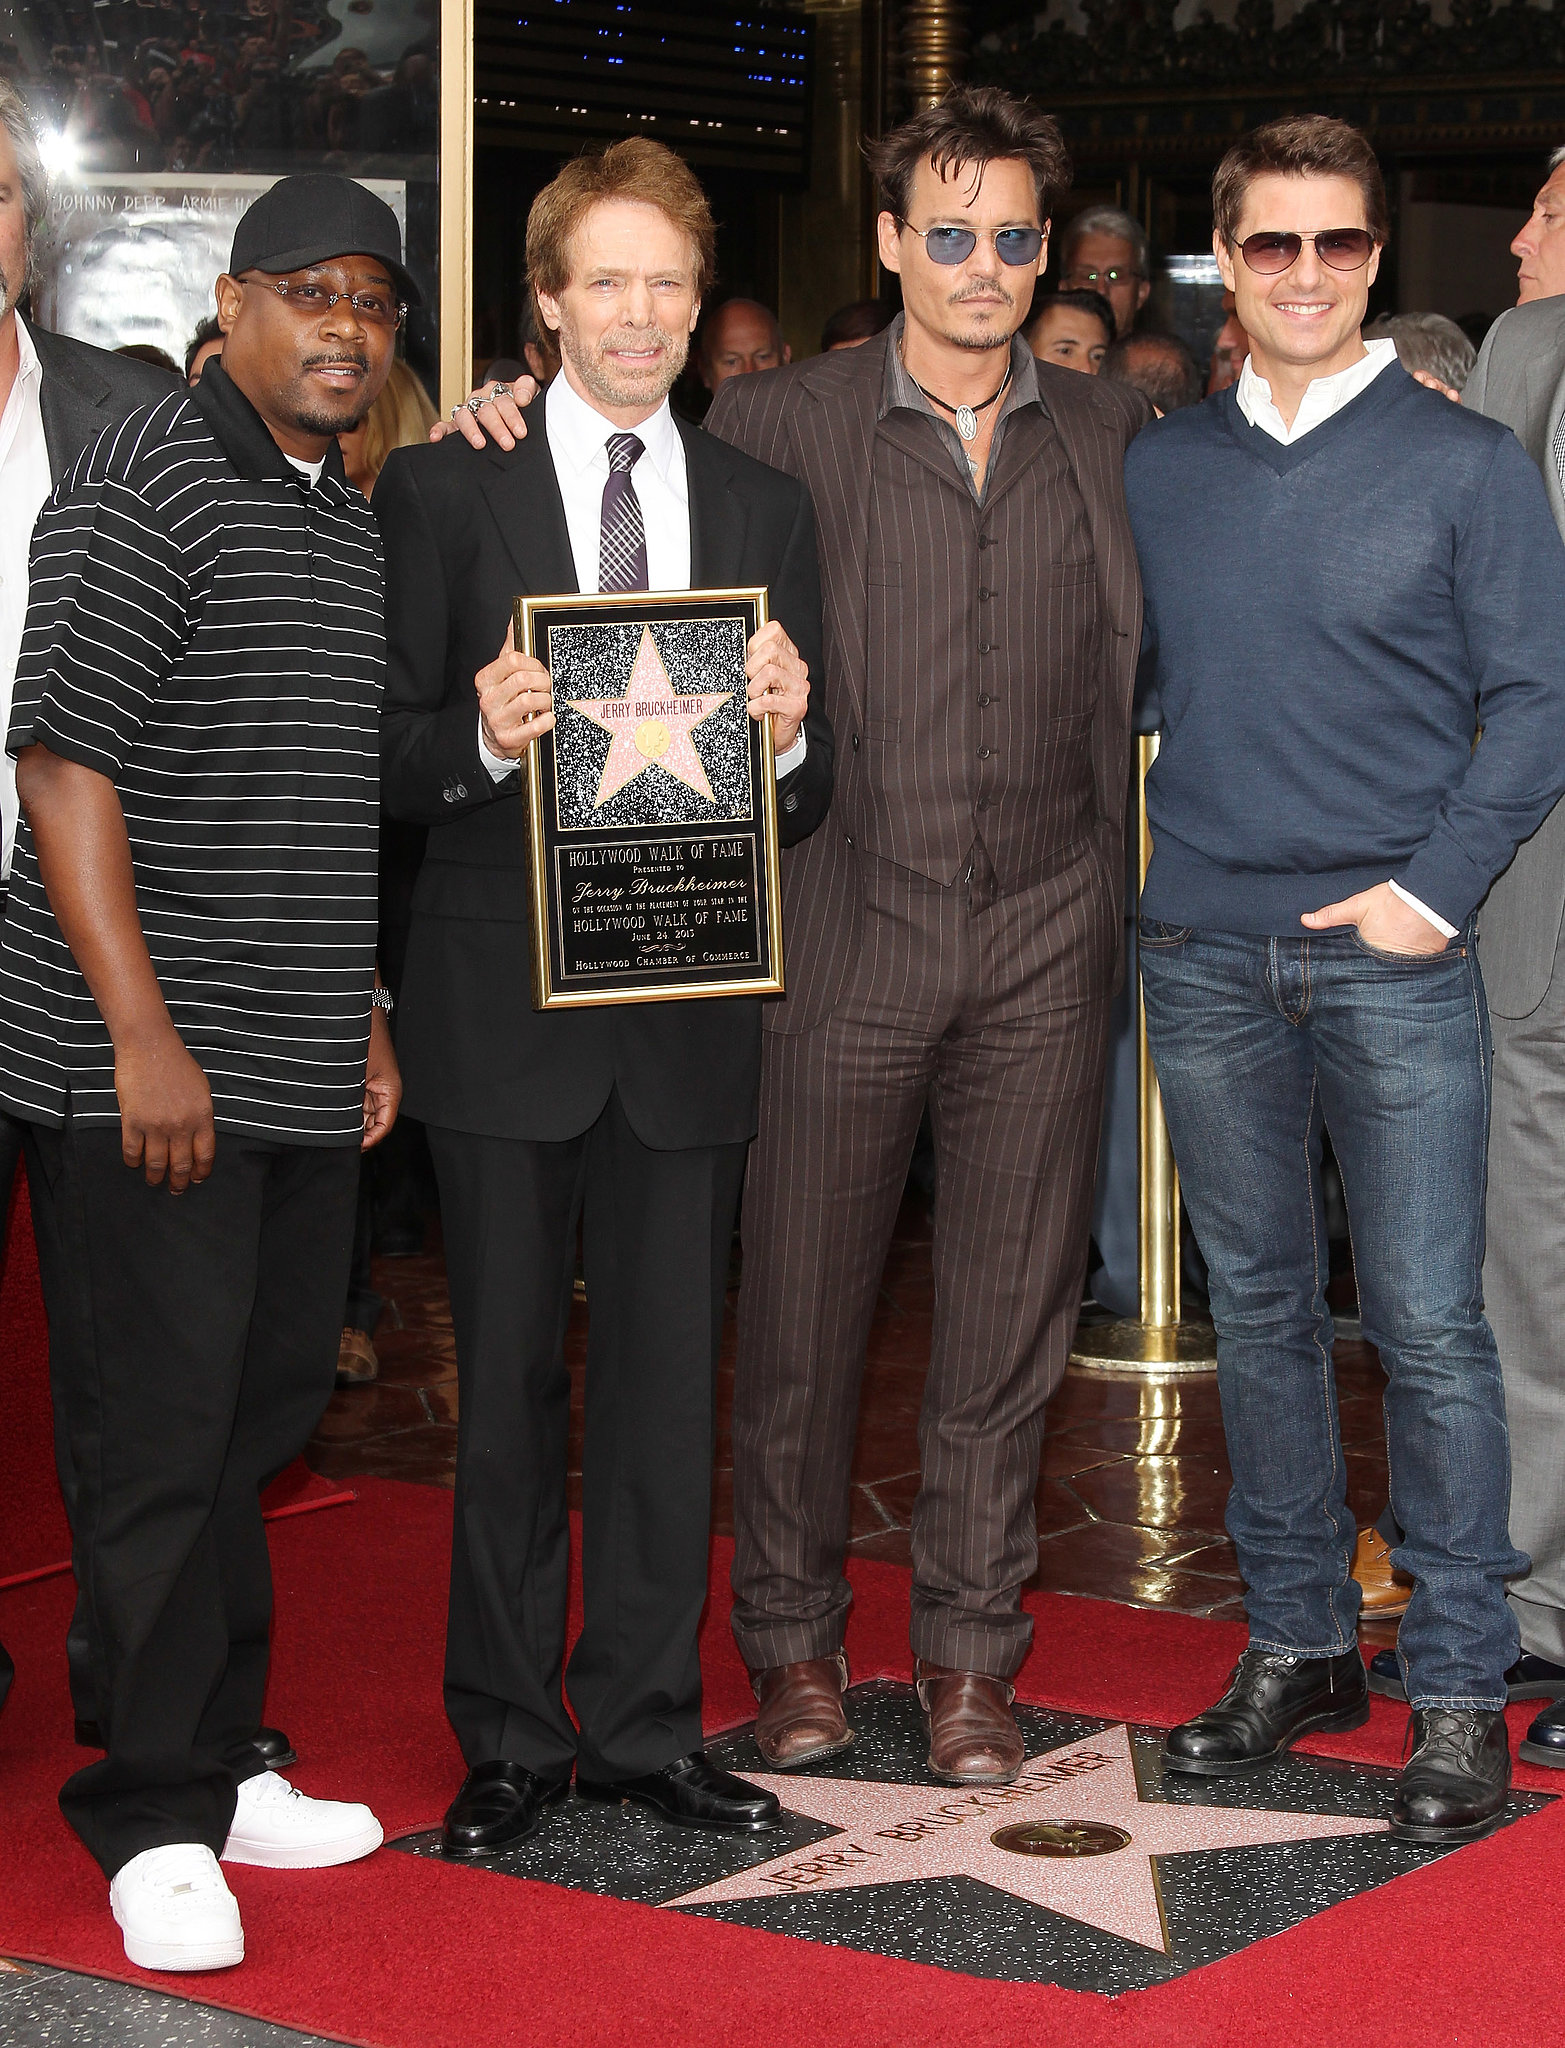 Martin Lawrence, Johnny Depp, and Tom Cruise were among the guests present as Jerry Bruckheimer received his star on the Walk of Fame.